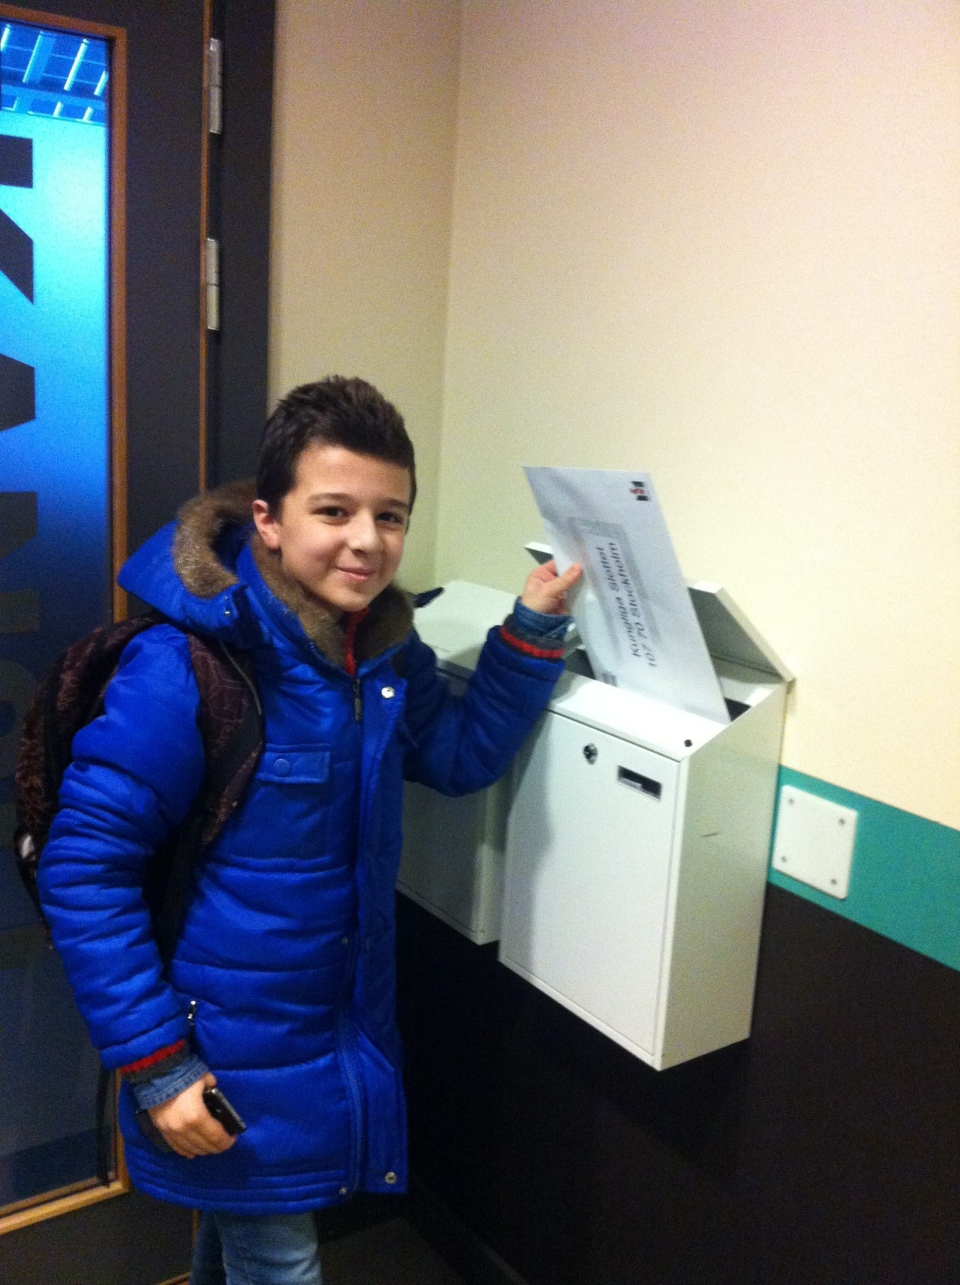 Twelve-year-old Syrian refugee boy Ahmed posts a letter to the Swedish king in Malmo, Sweden, Wednesday Feb. 3, 2016. (Pooja Sharafi via AP)